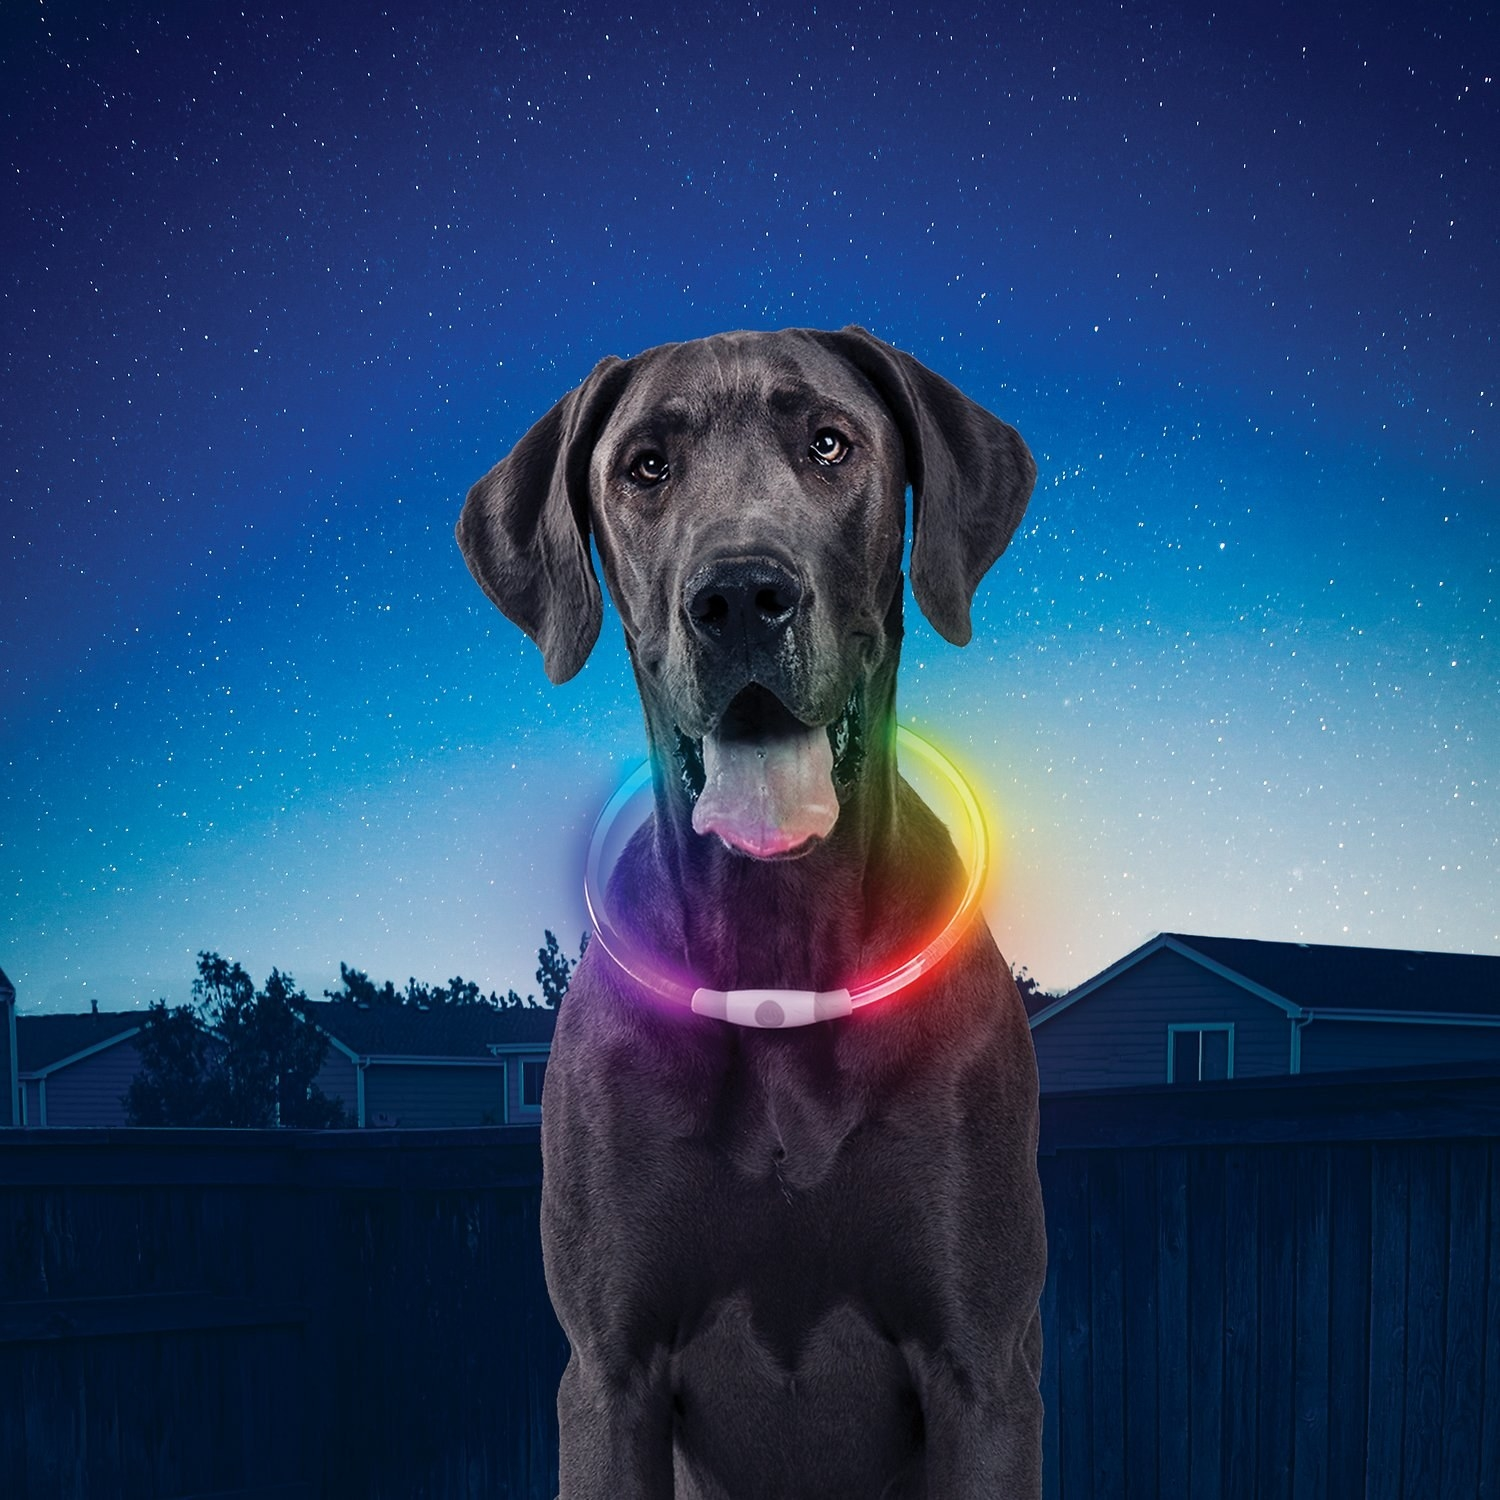 dog wearing the colorful LED collar